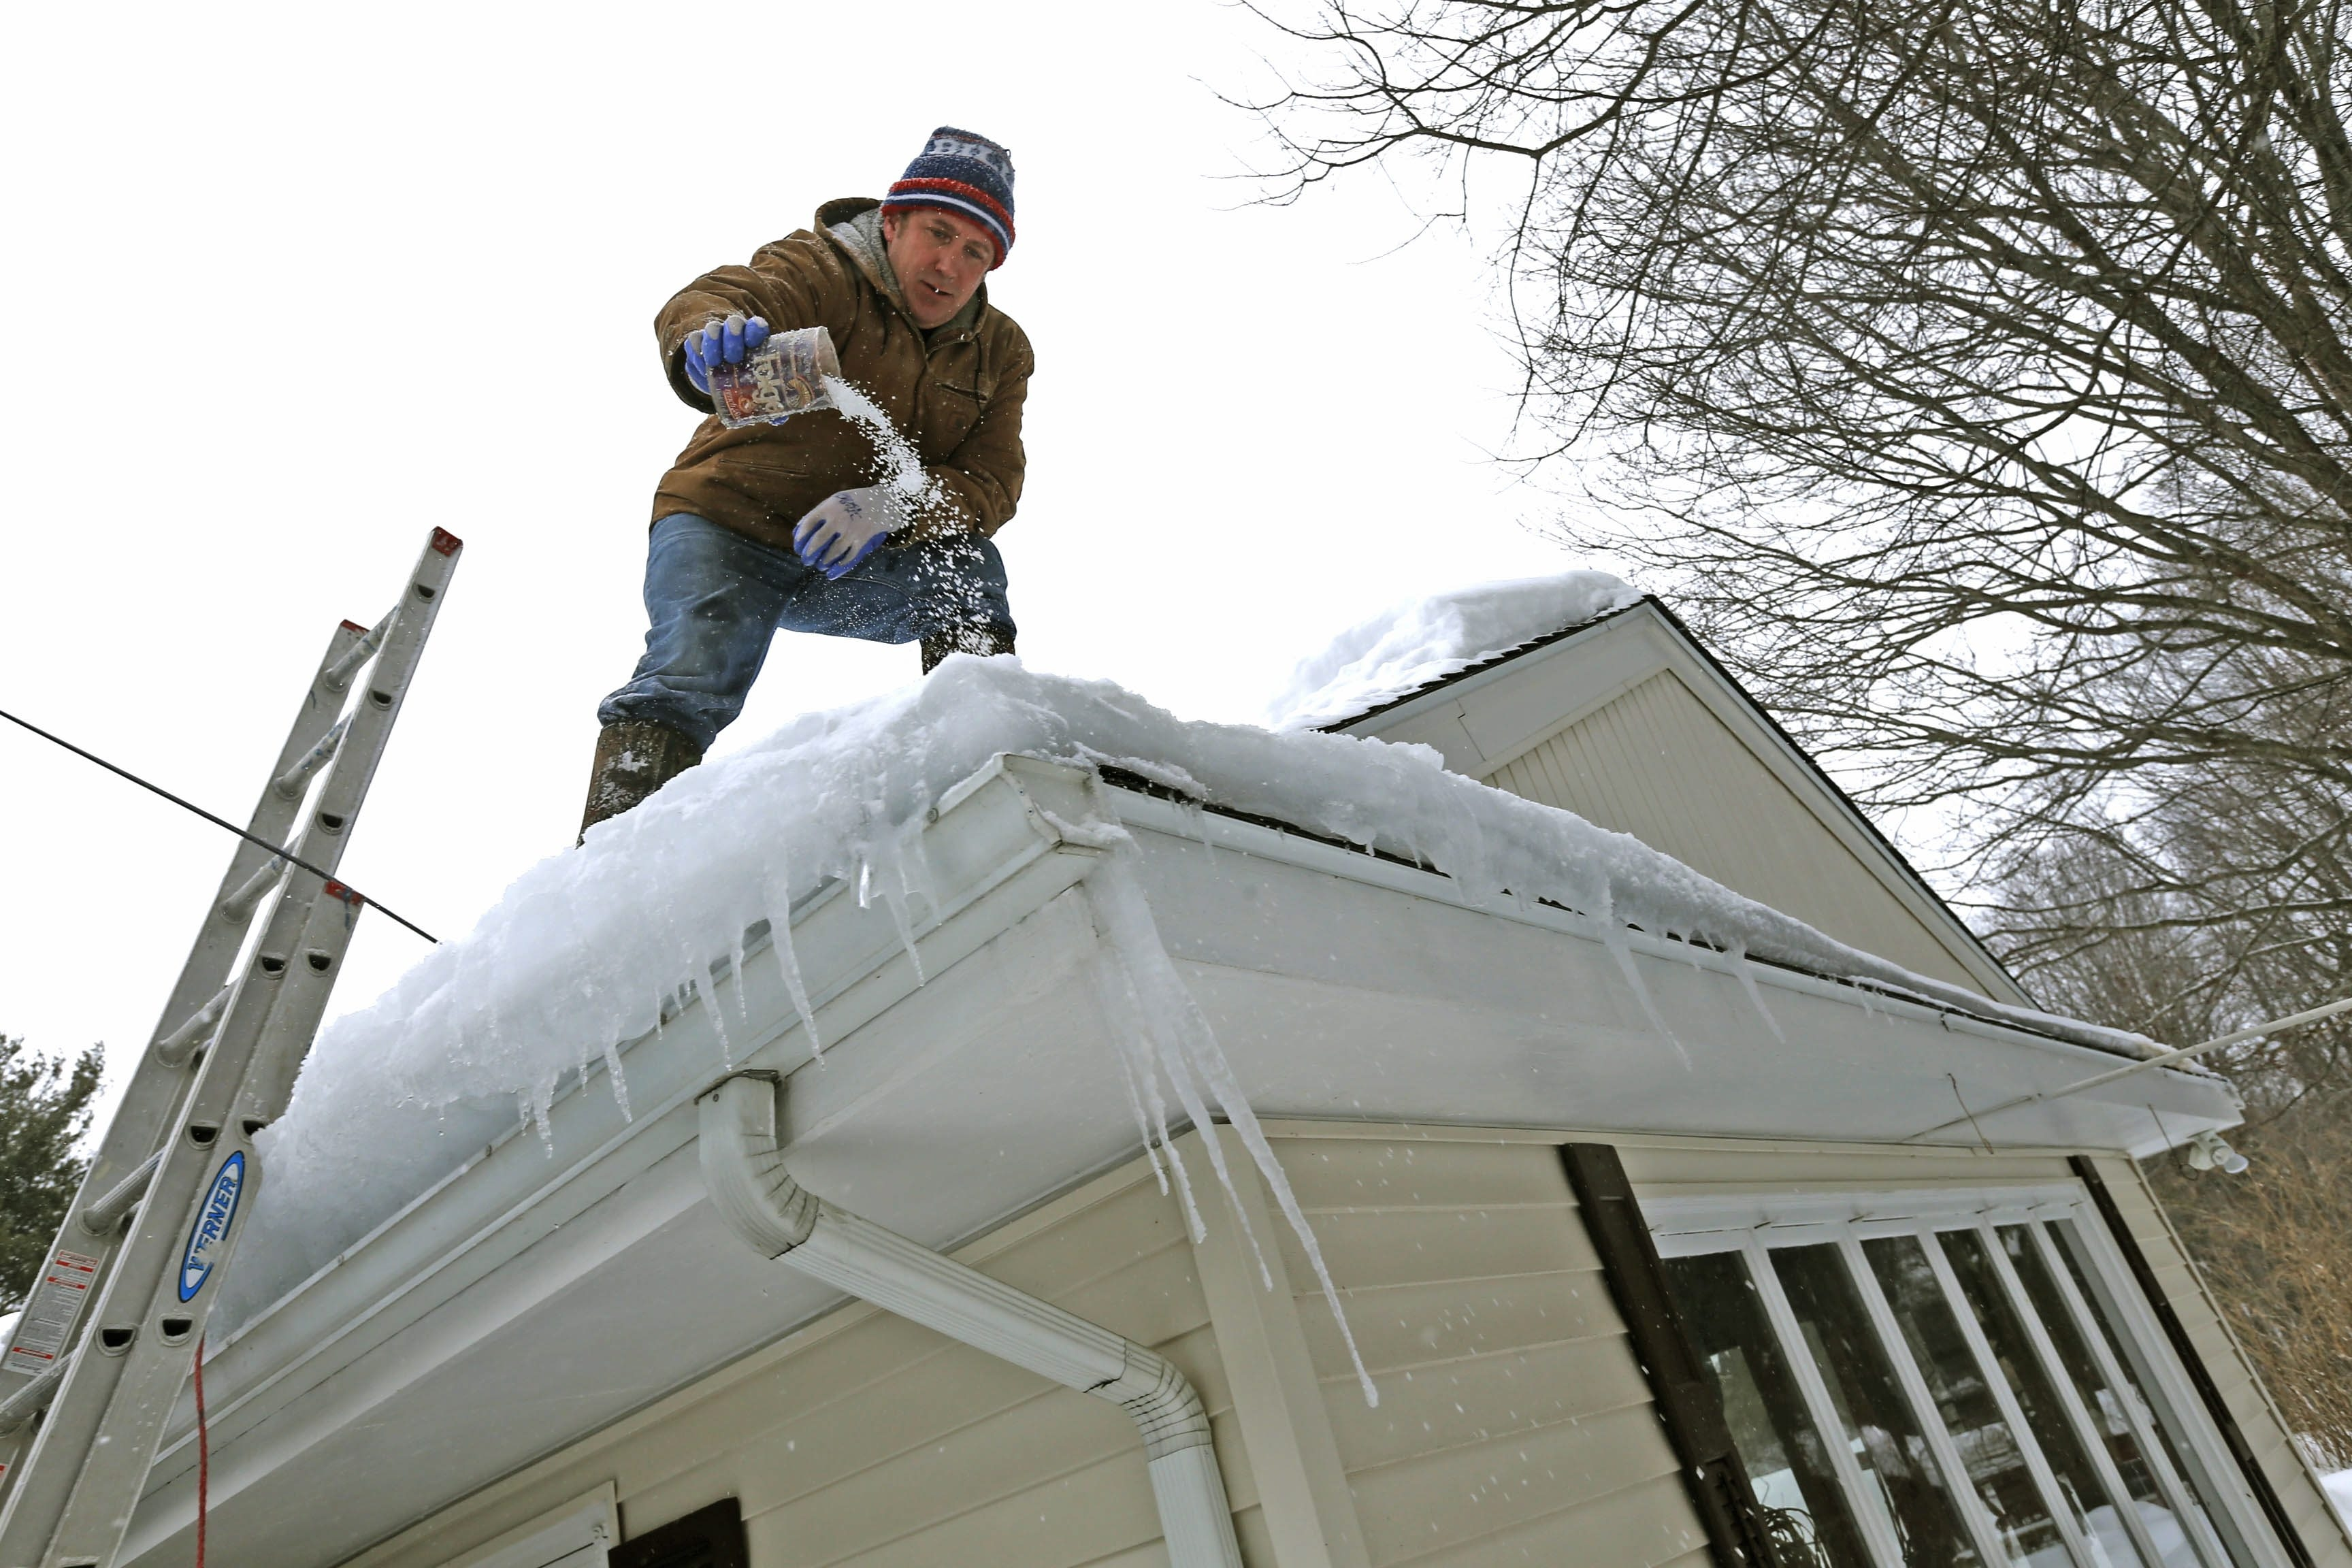 Armed Tuesday with a shovel and pail of granulated ice-melting compound, Geoff Gunner takes to the roof of a family member's home on Girdle Road in Elma, hoping to reduce the build-up of ice dams that threaten the home.